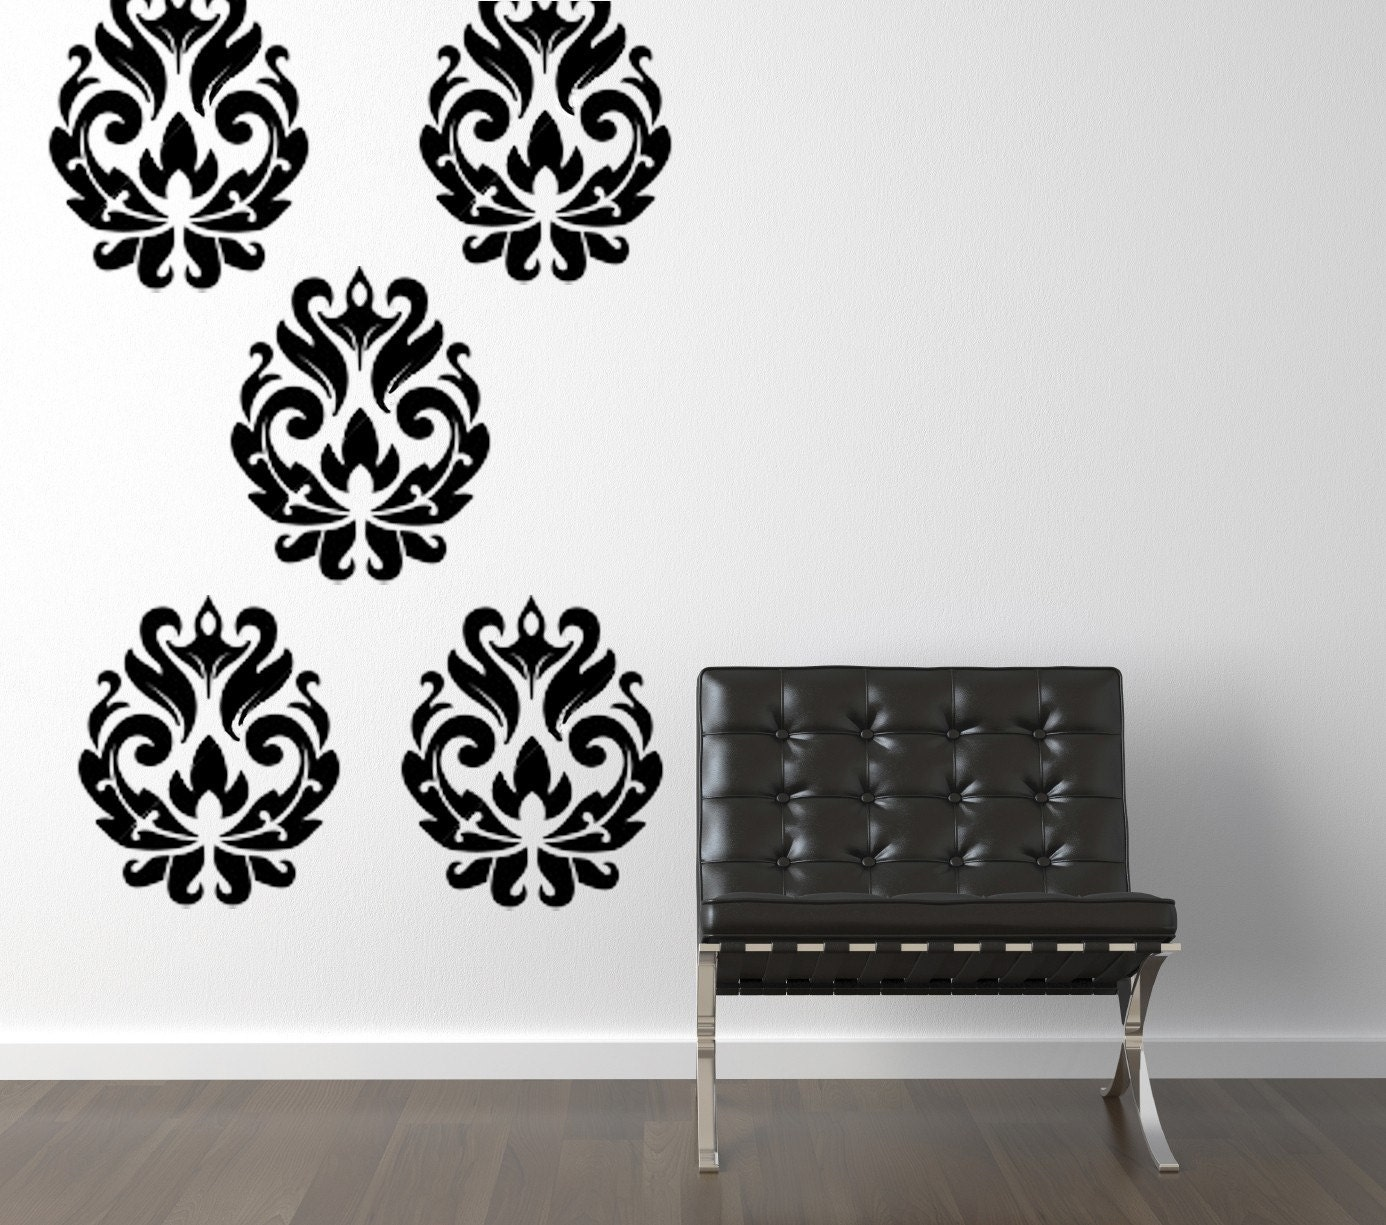 Items similar to damask brocade vinyl wall decal set on etsy for Damask wall mural